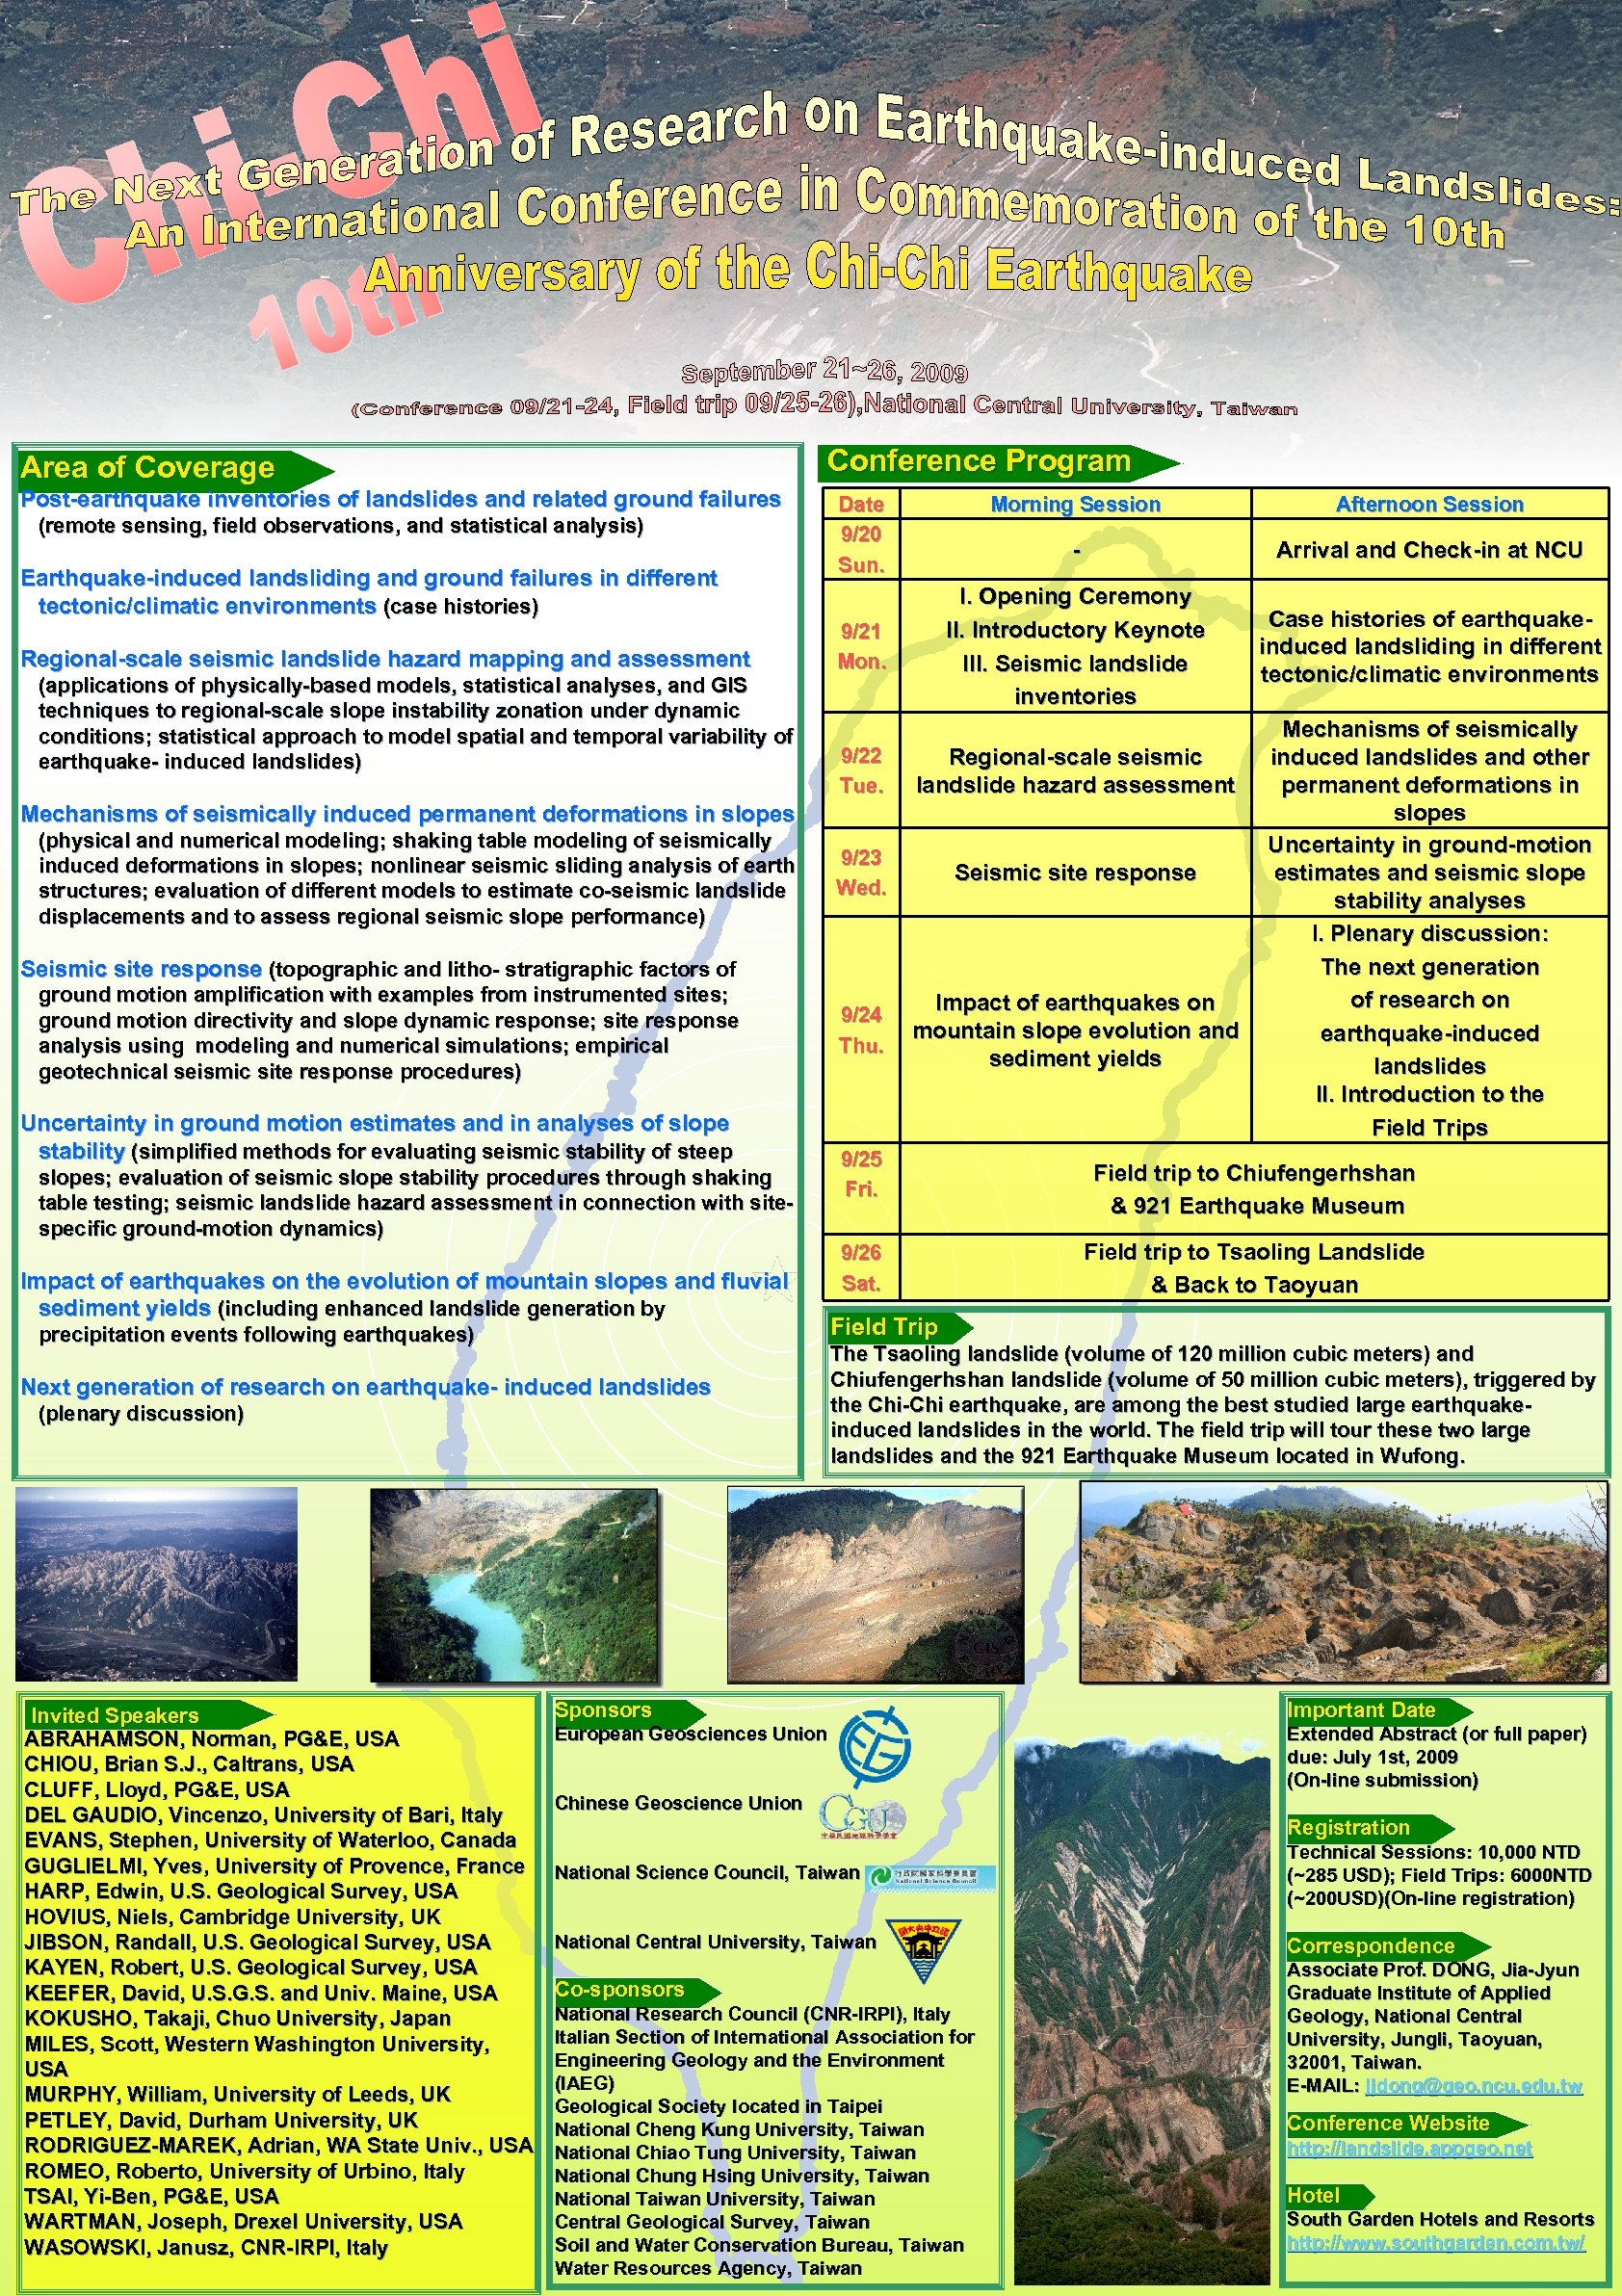 Conference Program Area of Coverage Post-earthquake inventories of landslides and related ground failures (remote